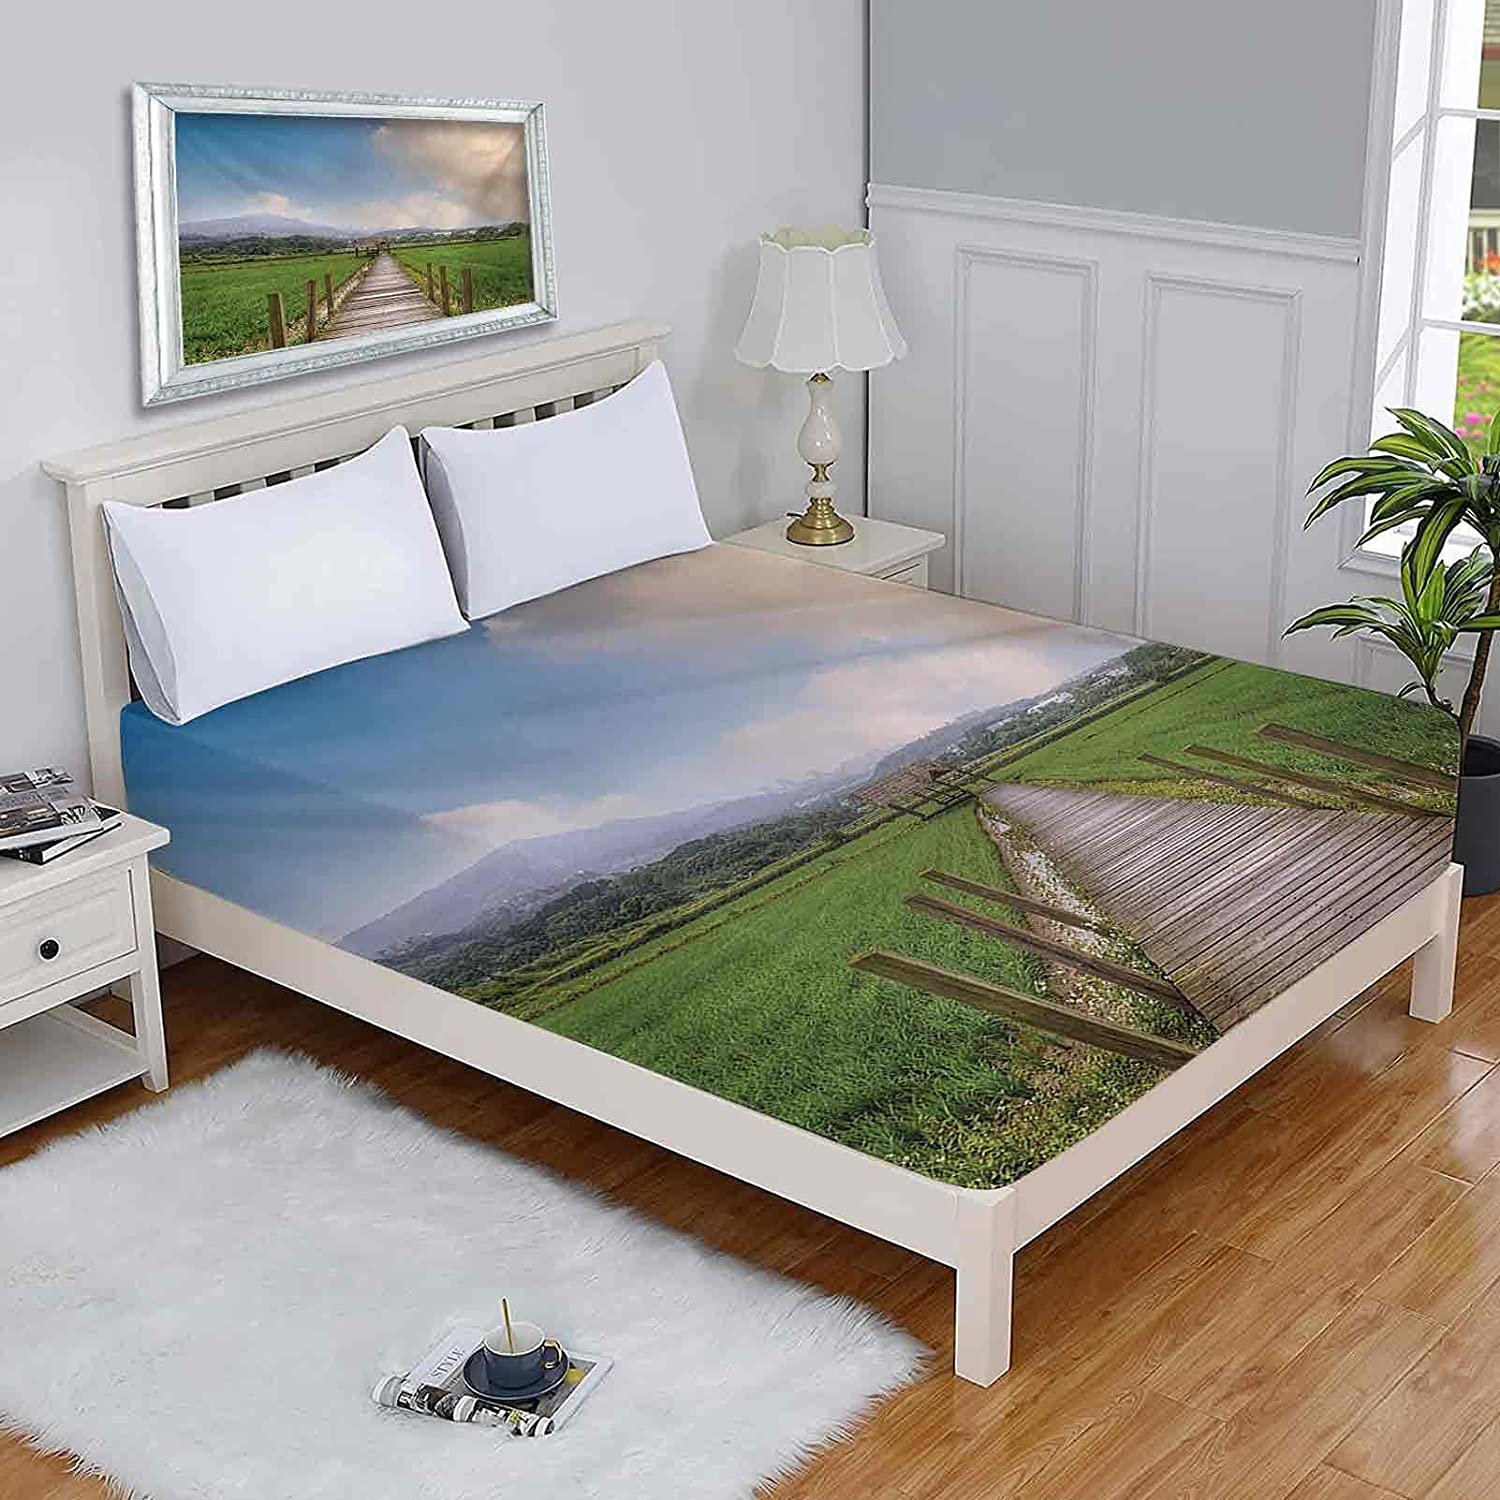 New popularity Country Queen List price Mattress Protector Rural Scenery Wooden with Path